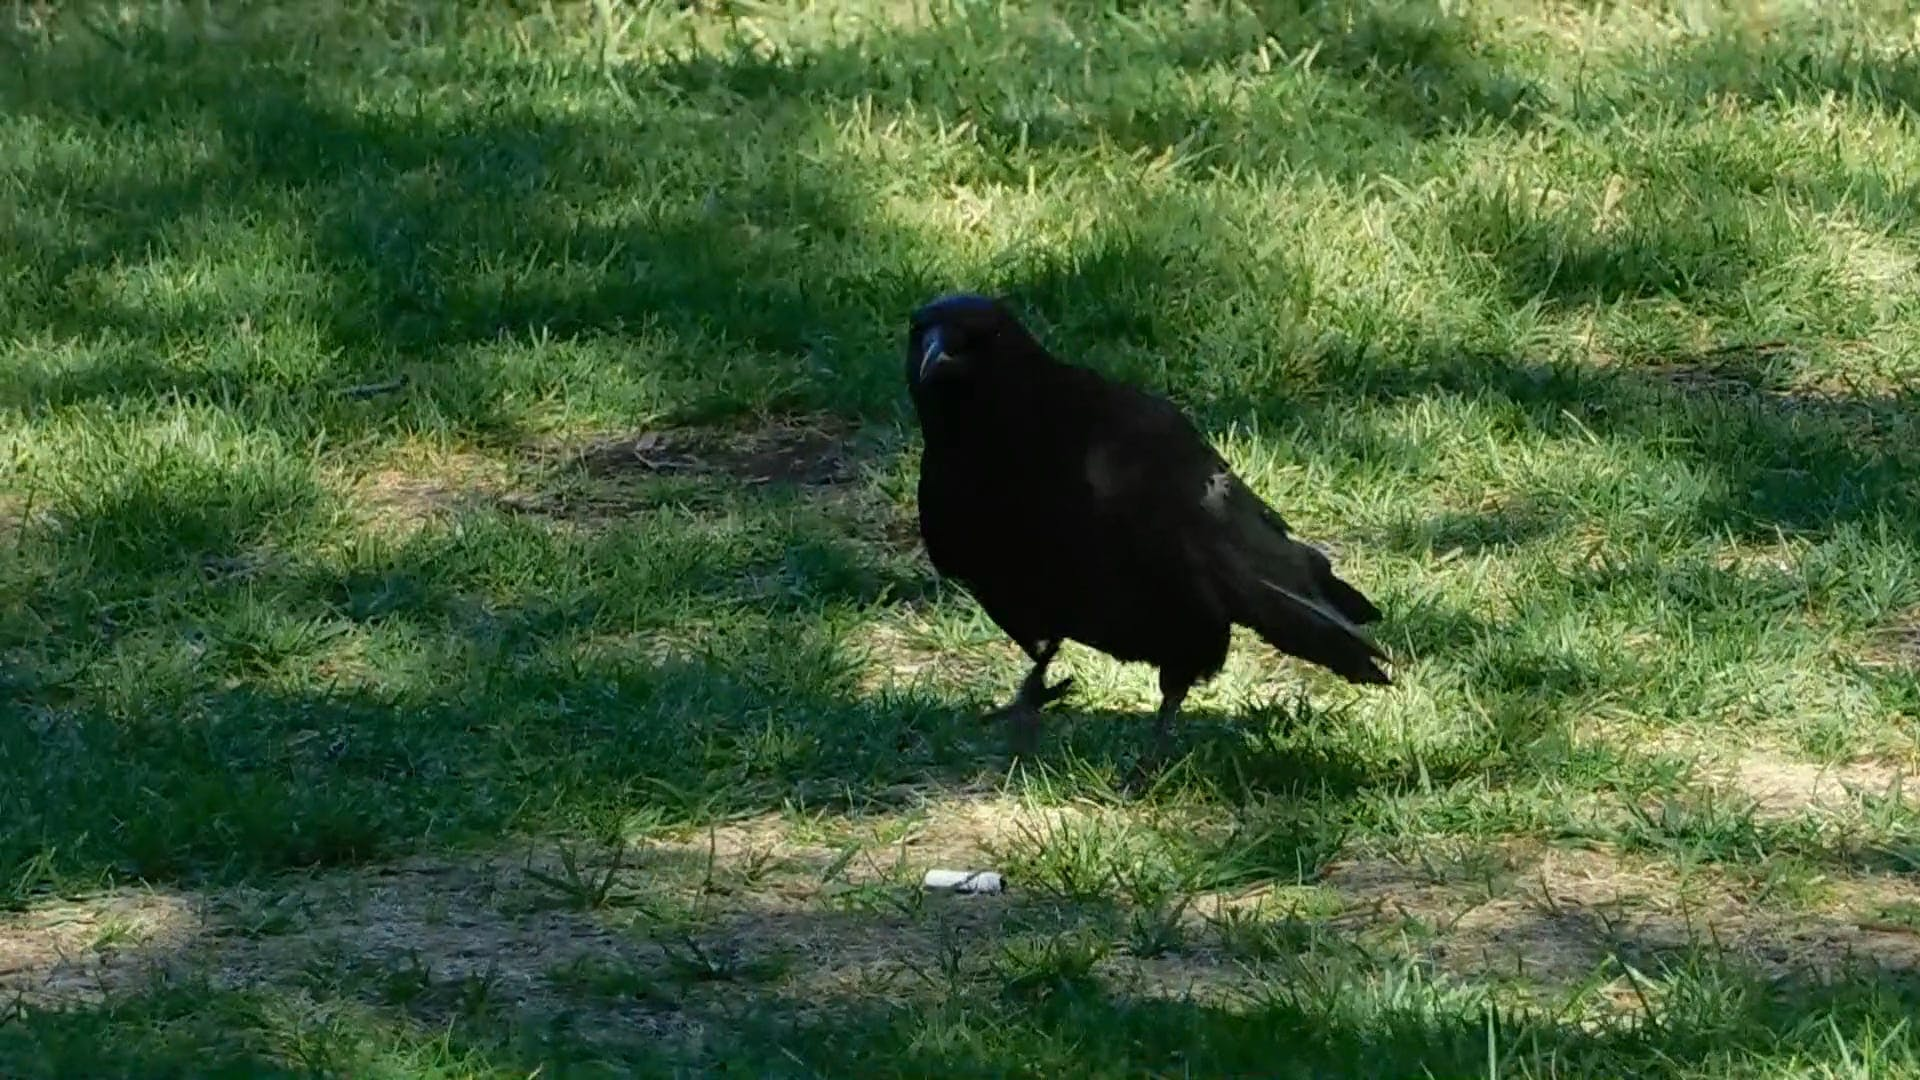 Close-Up Video Of Crow On Grass